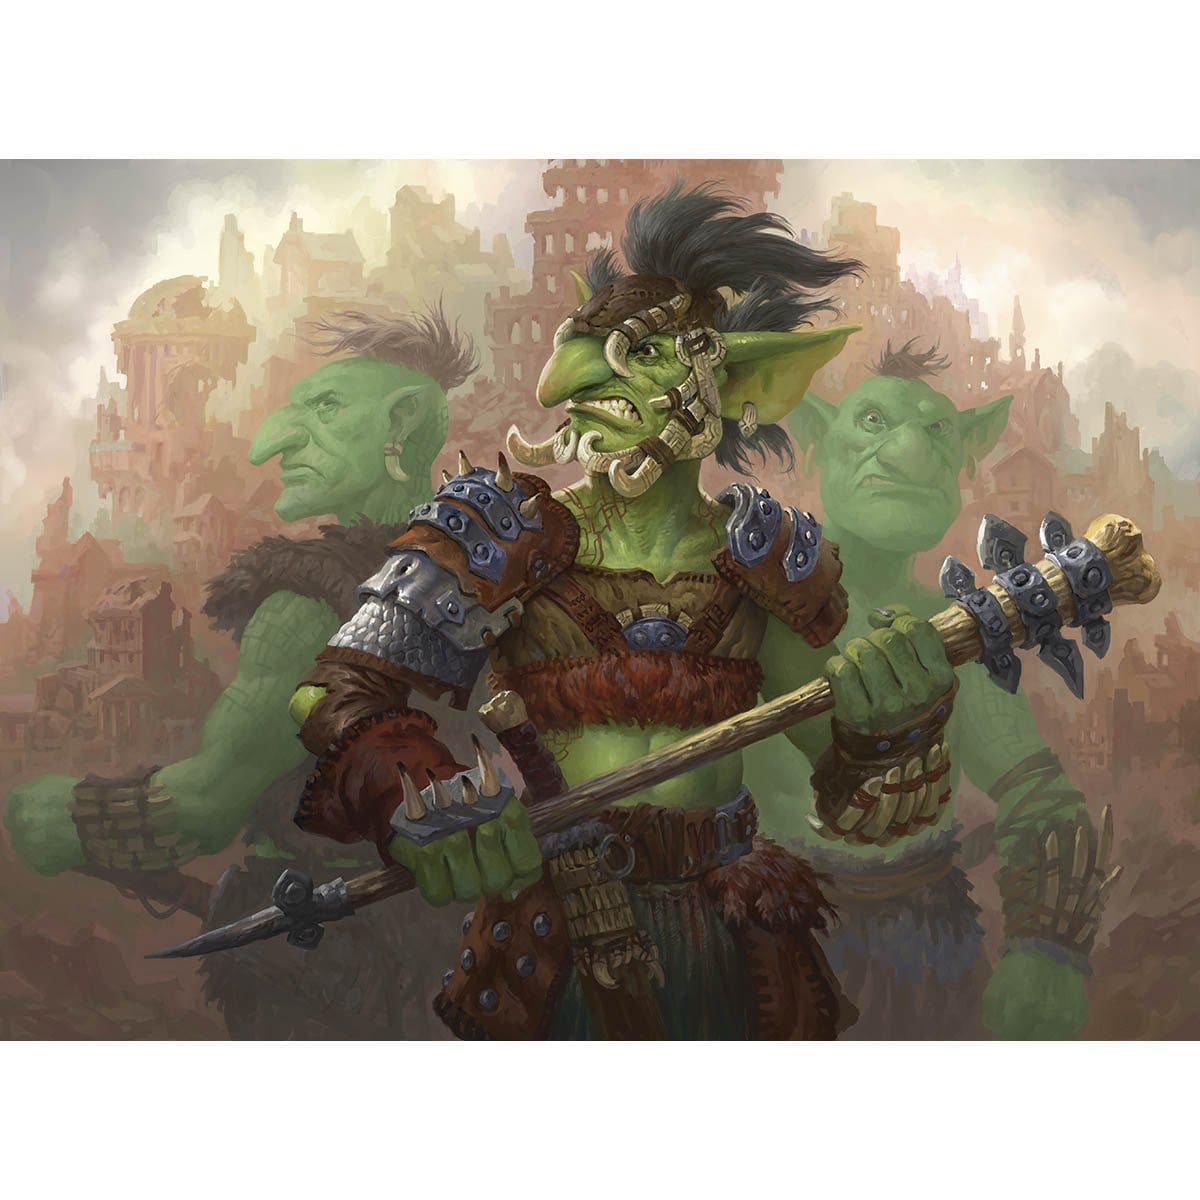 Goblin Gang Leader Print - Print - Original Magic Art - Accessories for Magic the Gathering and other card games